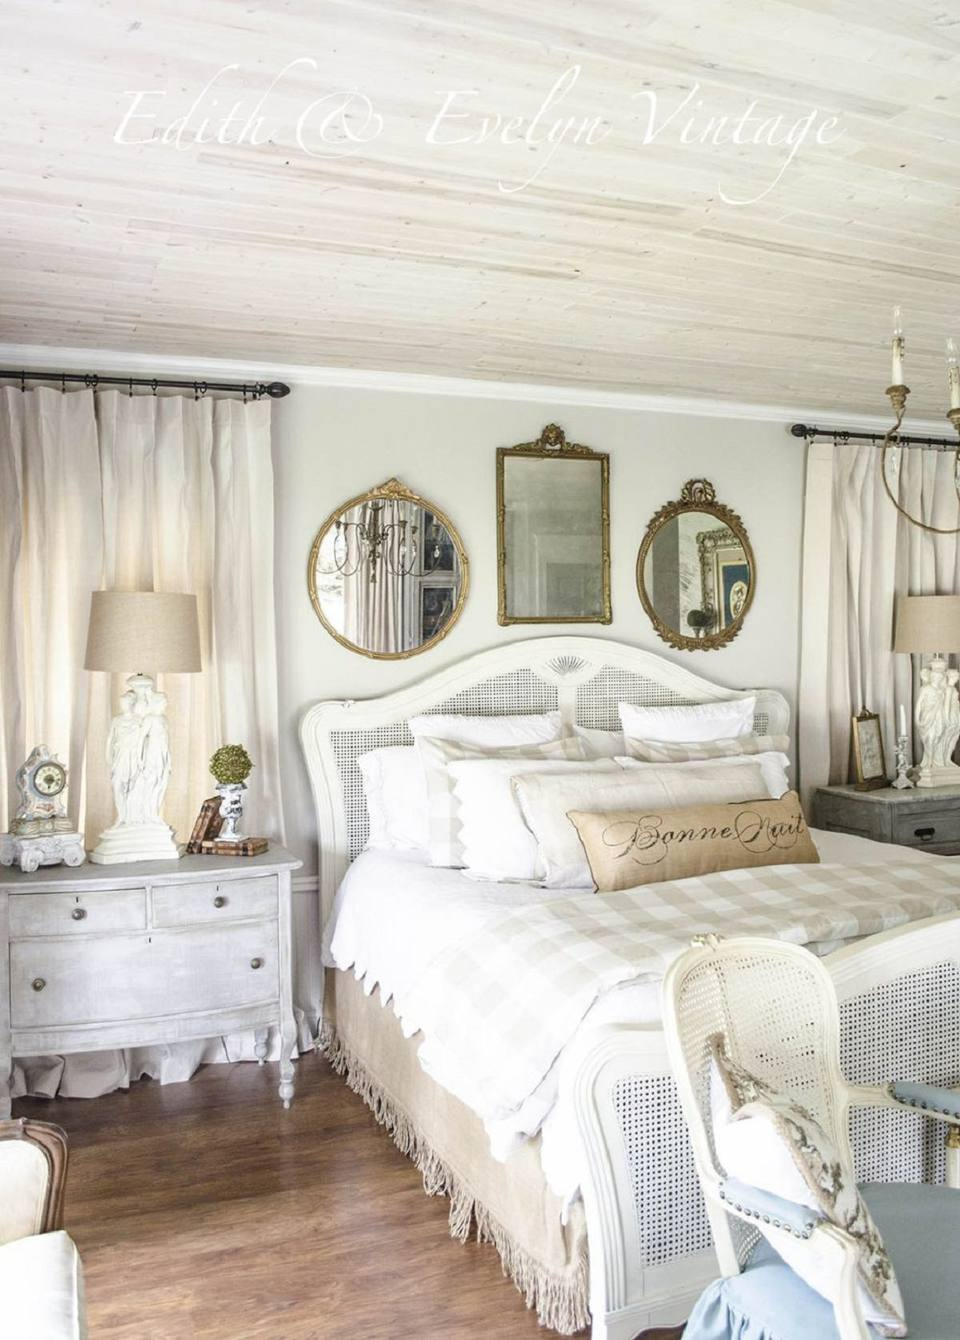 French Country Bedroom Decorating Ideas and Photos on french country style bedroom flooring, french theme decorating ideas, french country bedroom furniture, french style living room decorating ideas, french country style rugs, french country style art, french country style teen bedrooms, french country style decor, french country style fabrics, french country style interior, french country style lighting, french country style master bedroom, french country style bathroom, french country style kitchen, french country style wallpaper, french chic bedroom ideas, french country style bedroom sets, french country style home, french country style halloween, french country style sofa furniture,